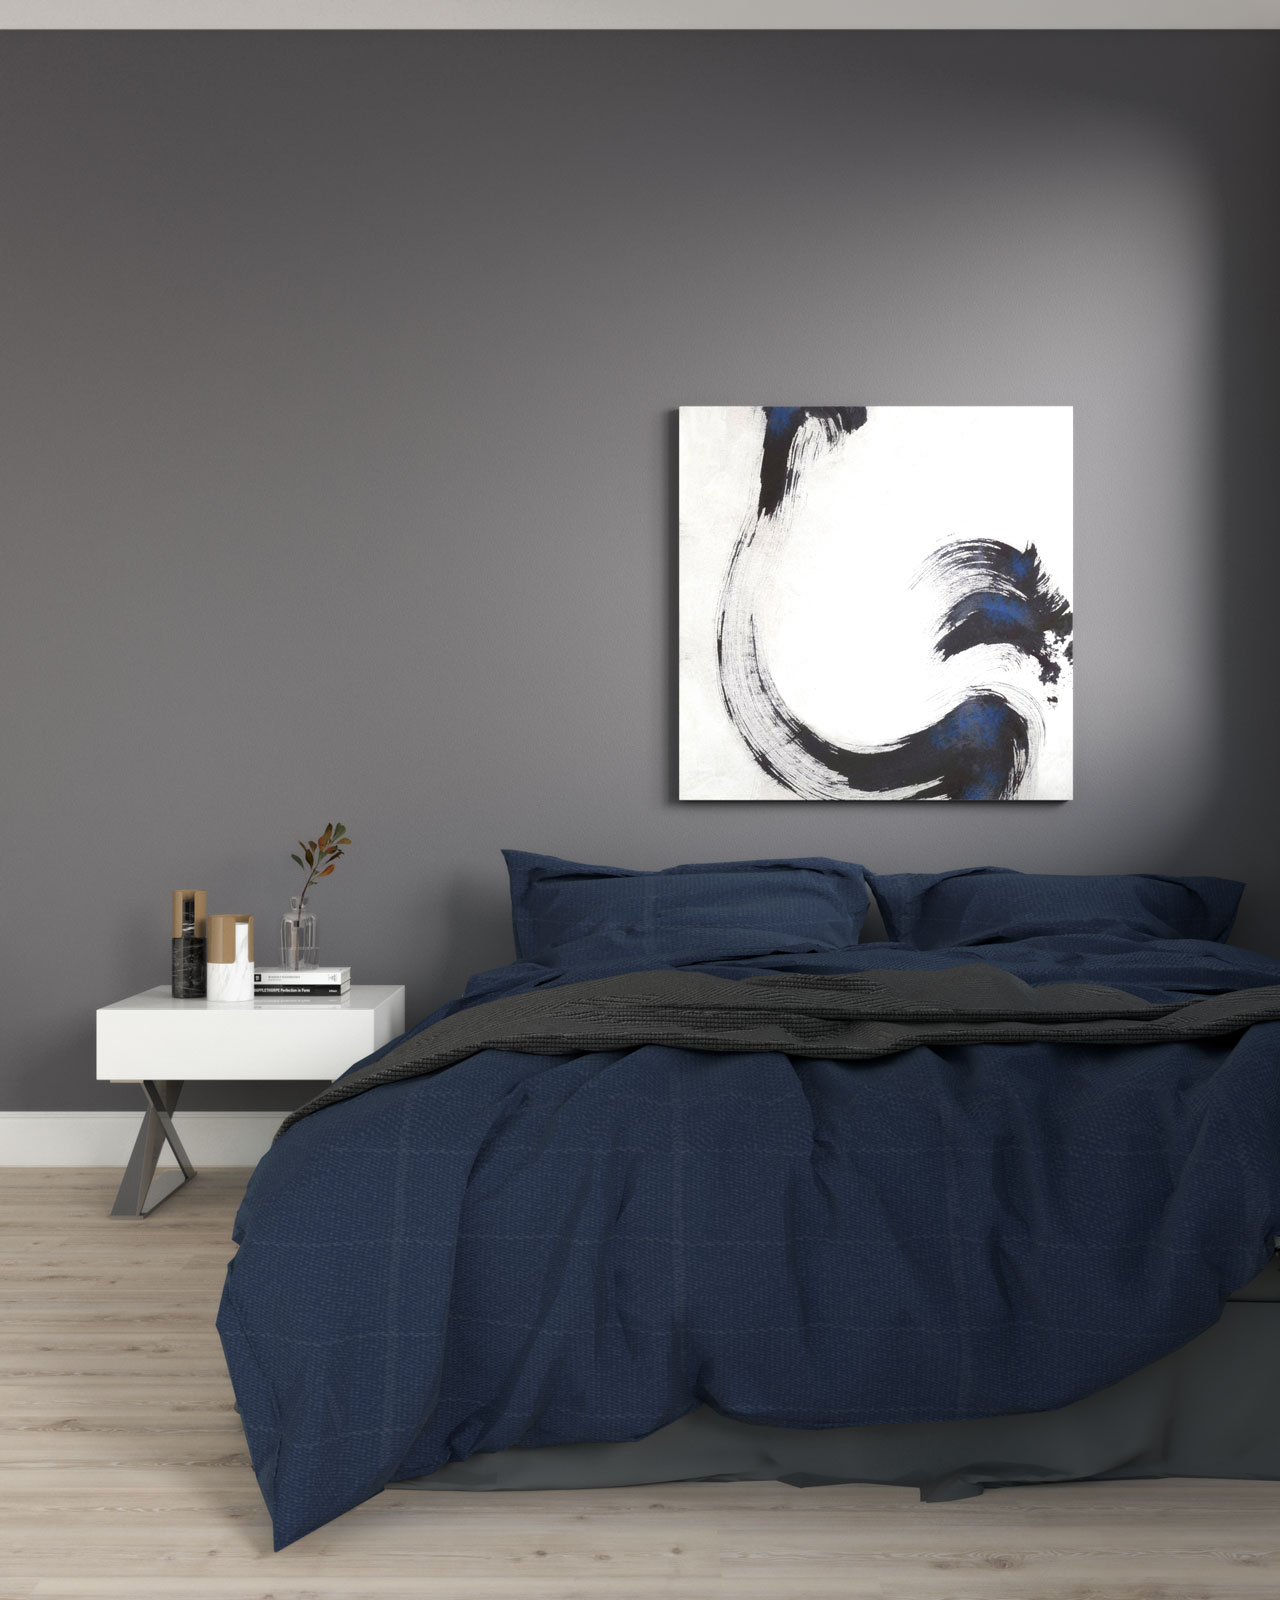 Charcoal accent wall in bedroom with dark blue accent